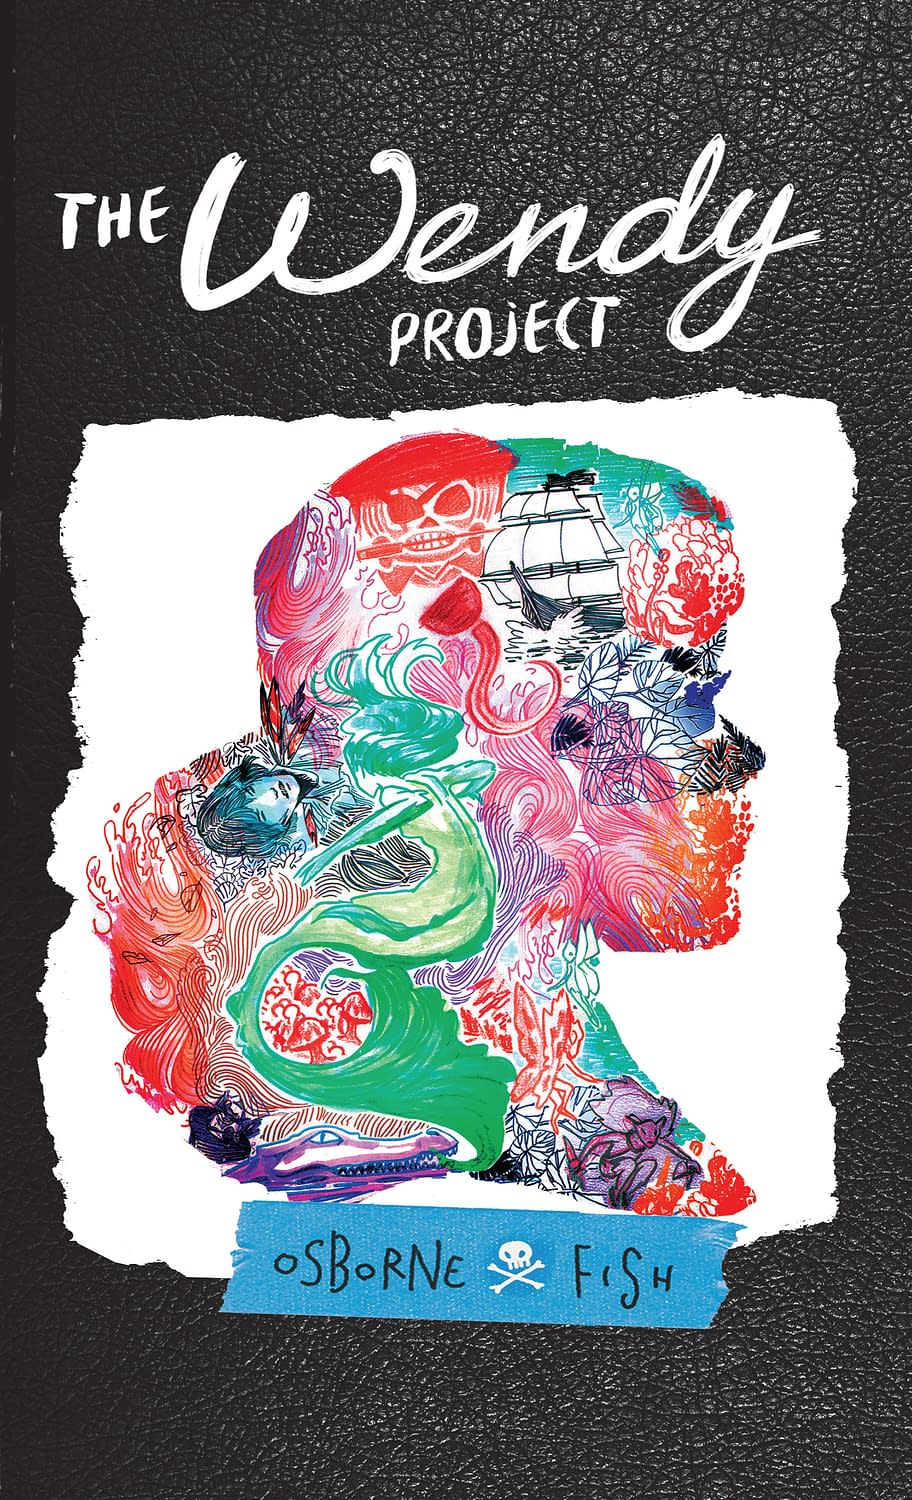 Gritty Peter Pan Comic Reboot 'The Wendy Project' Is In Stores Today